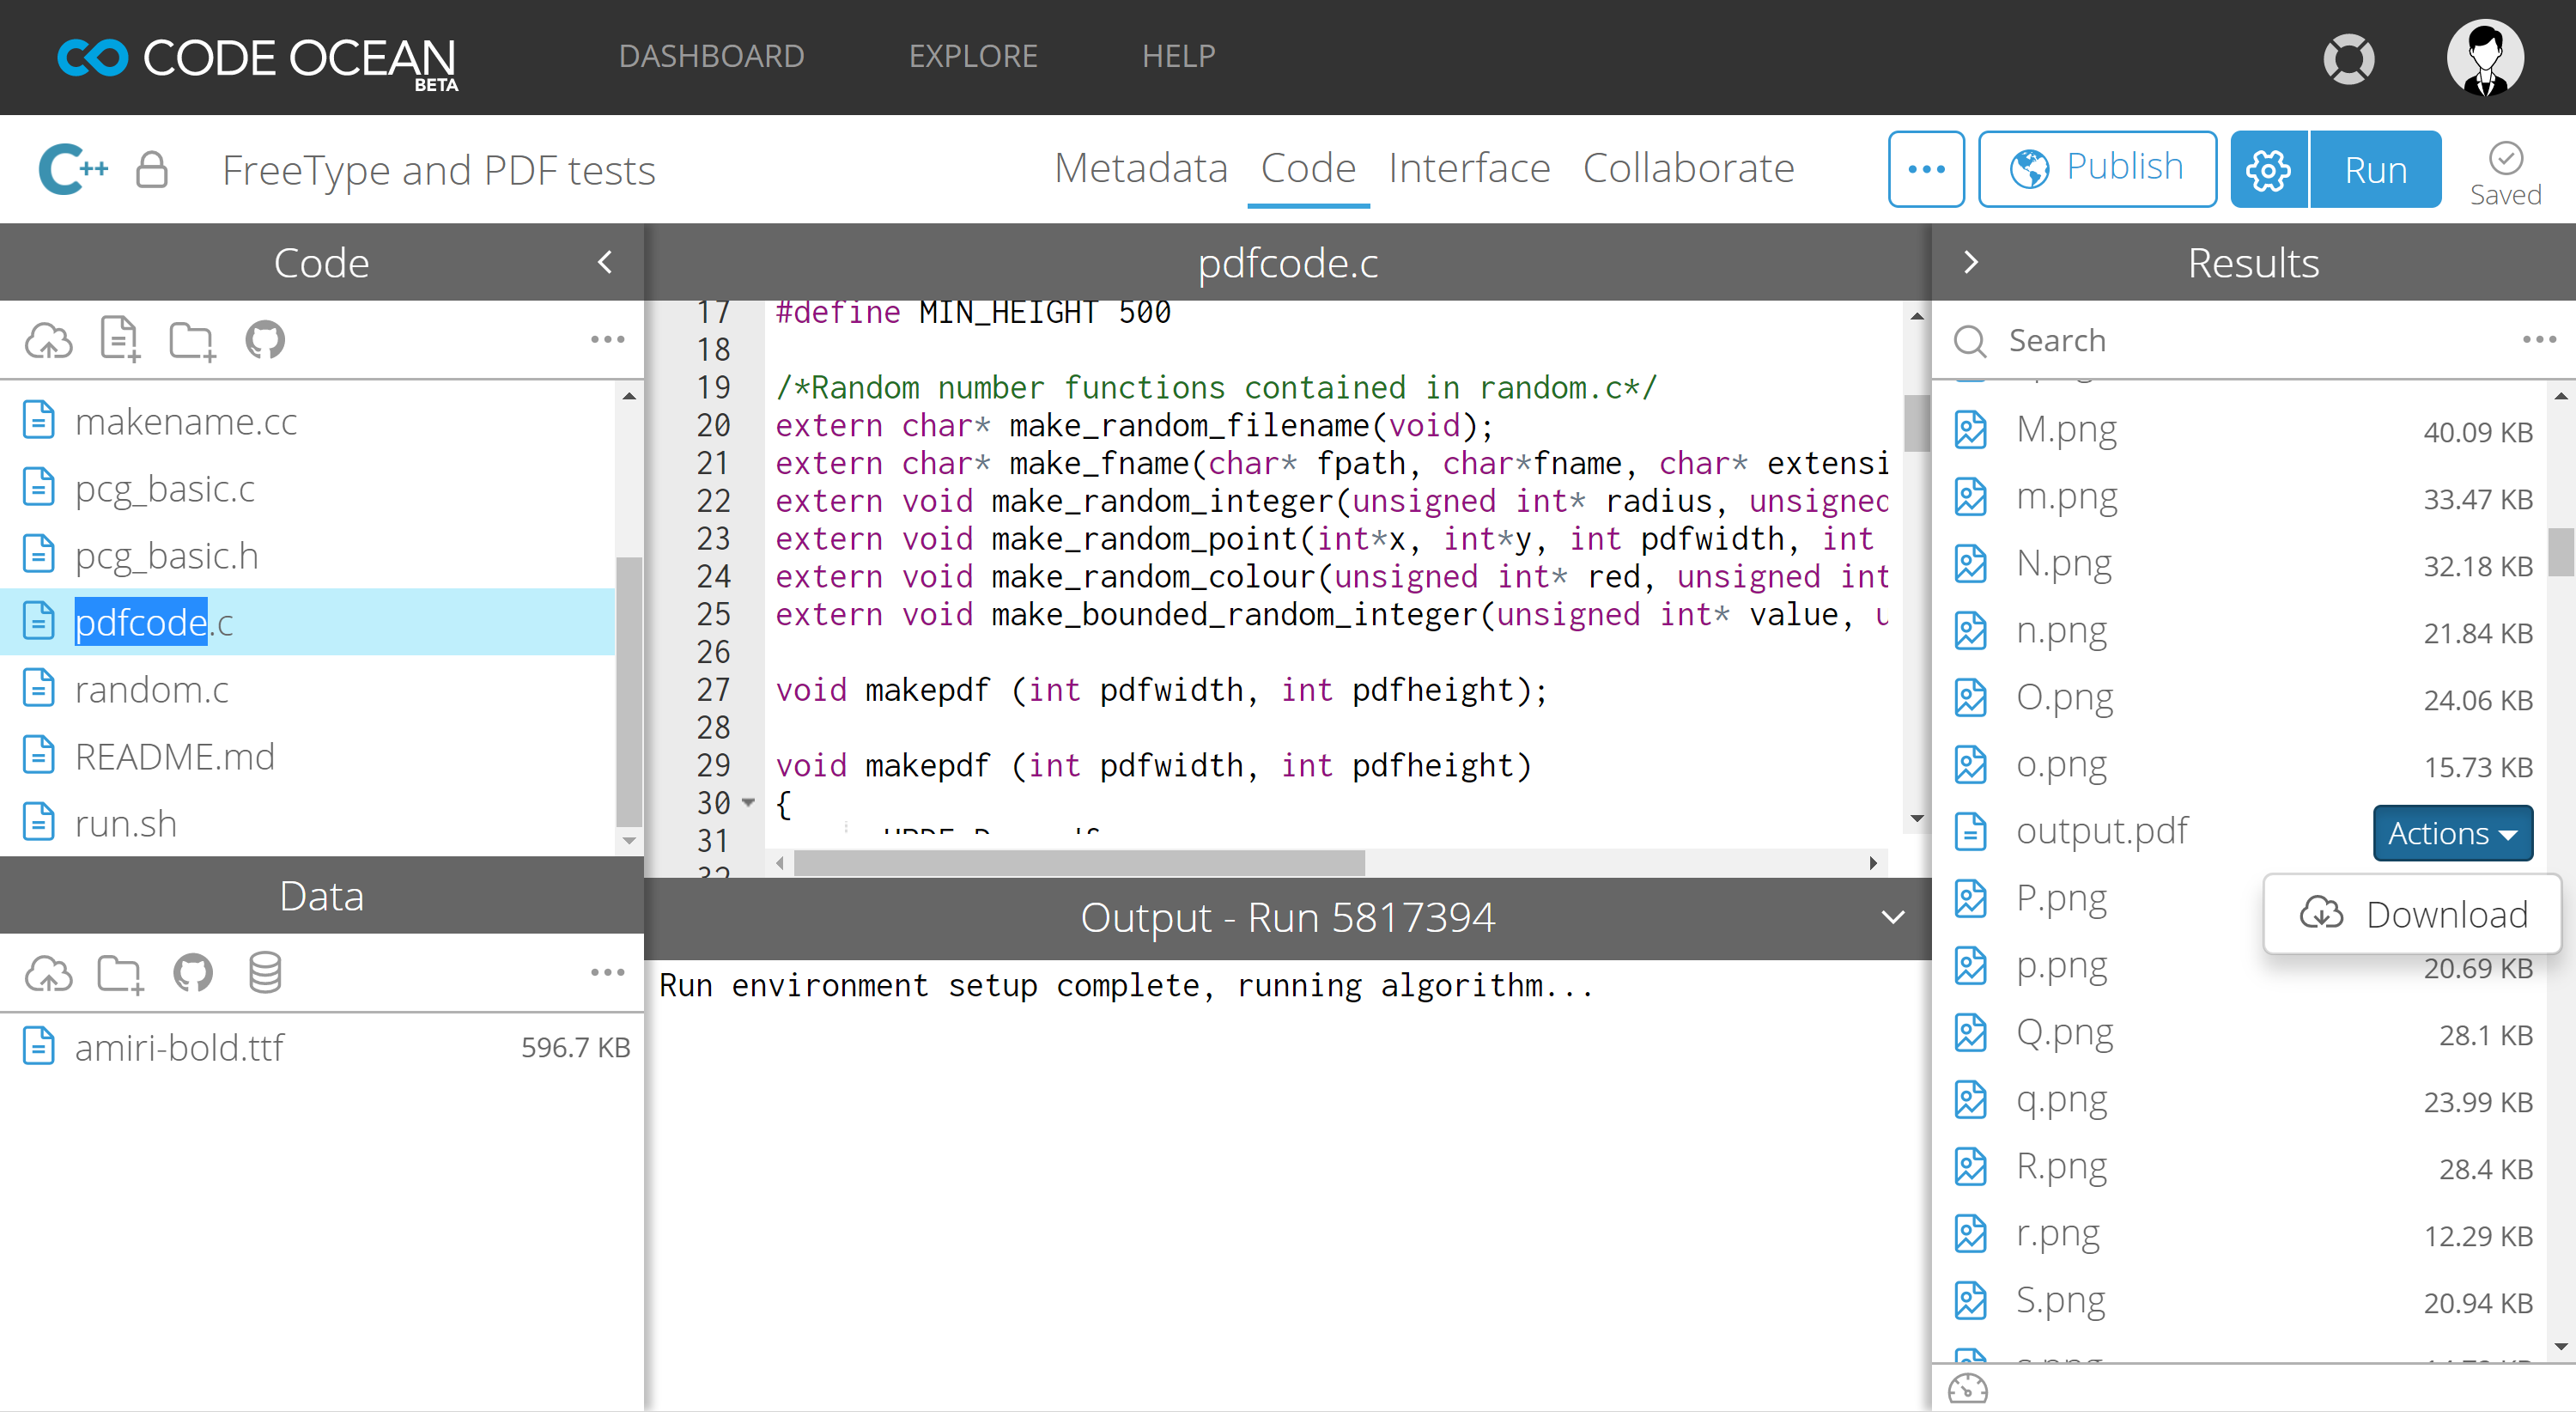 Case Study: An Introduction to Code Ocean—Creating and